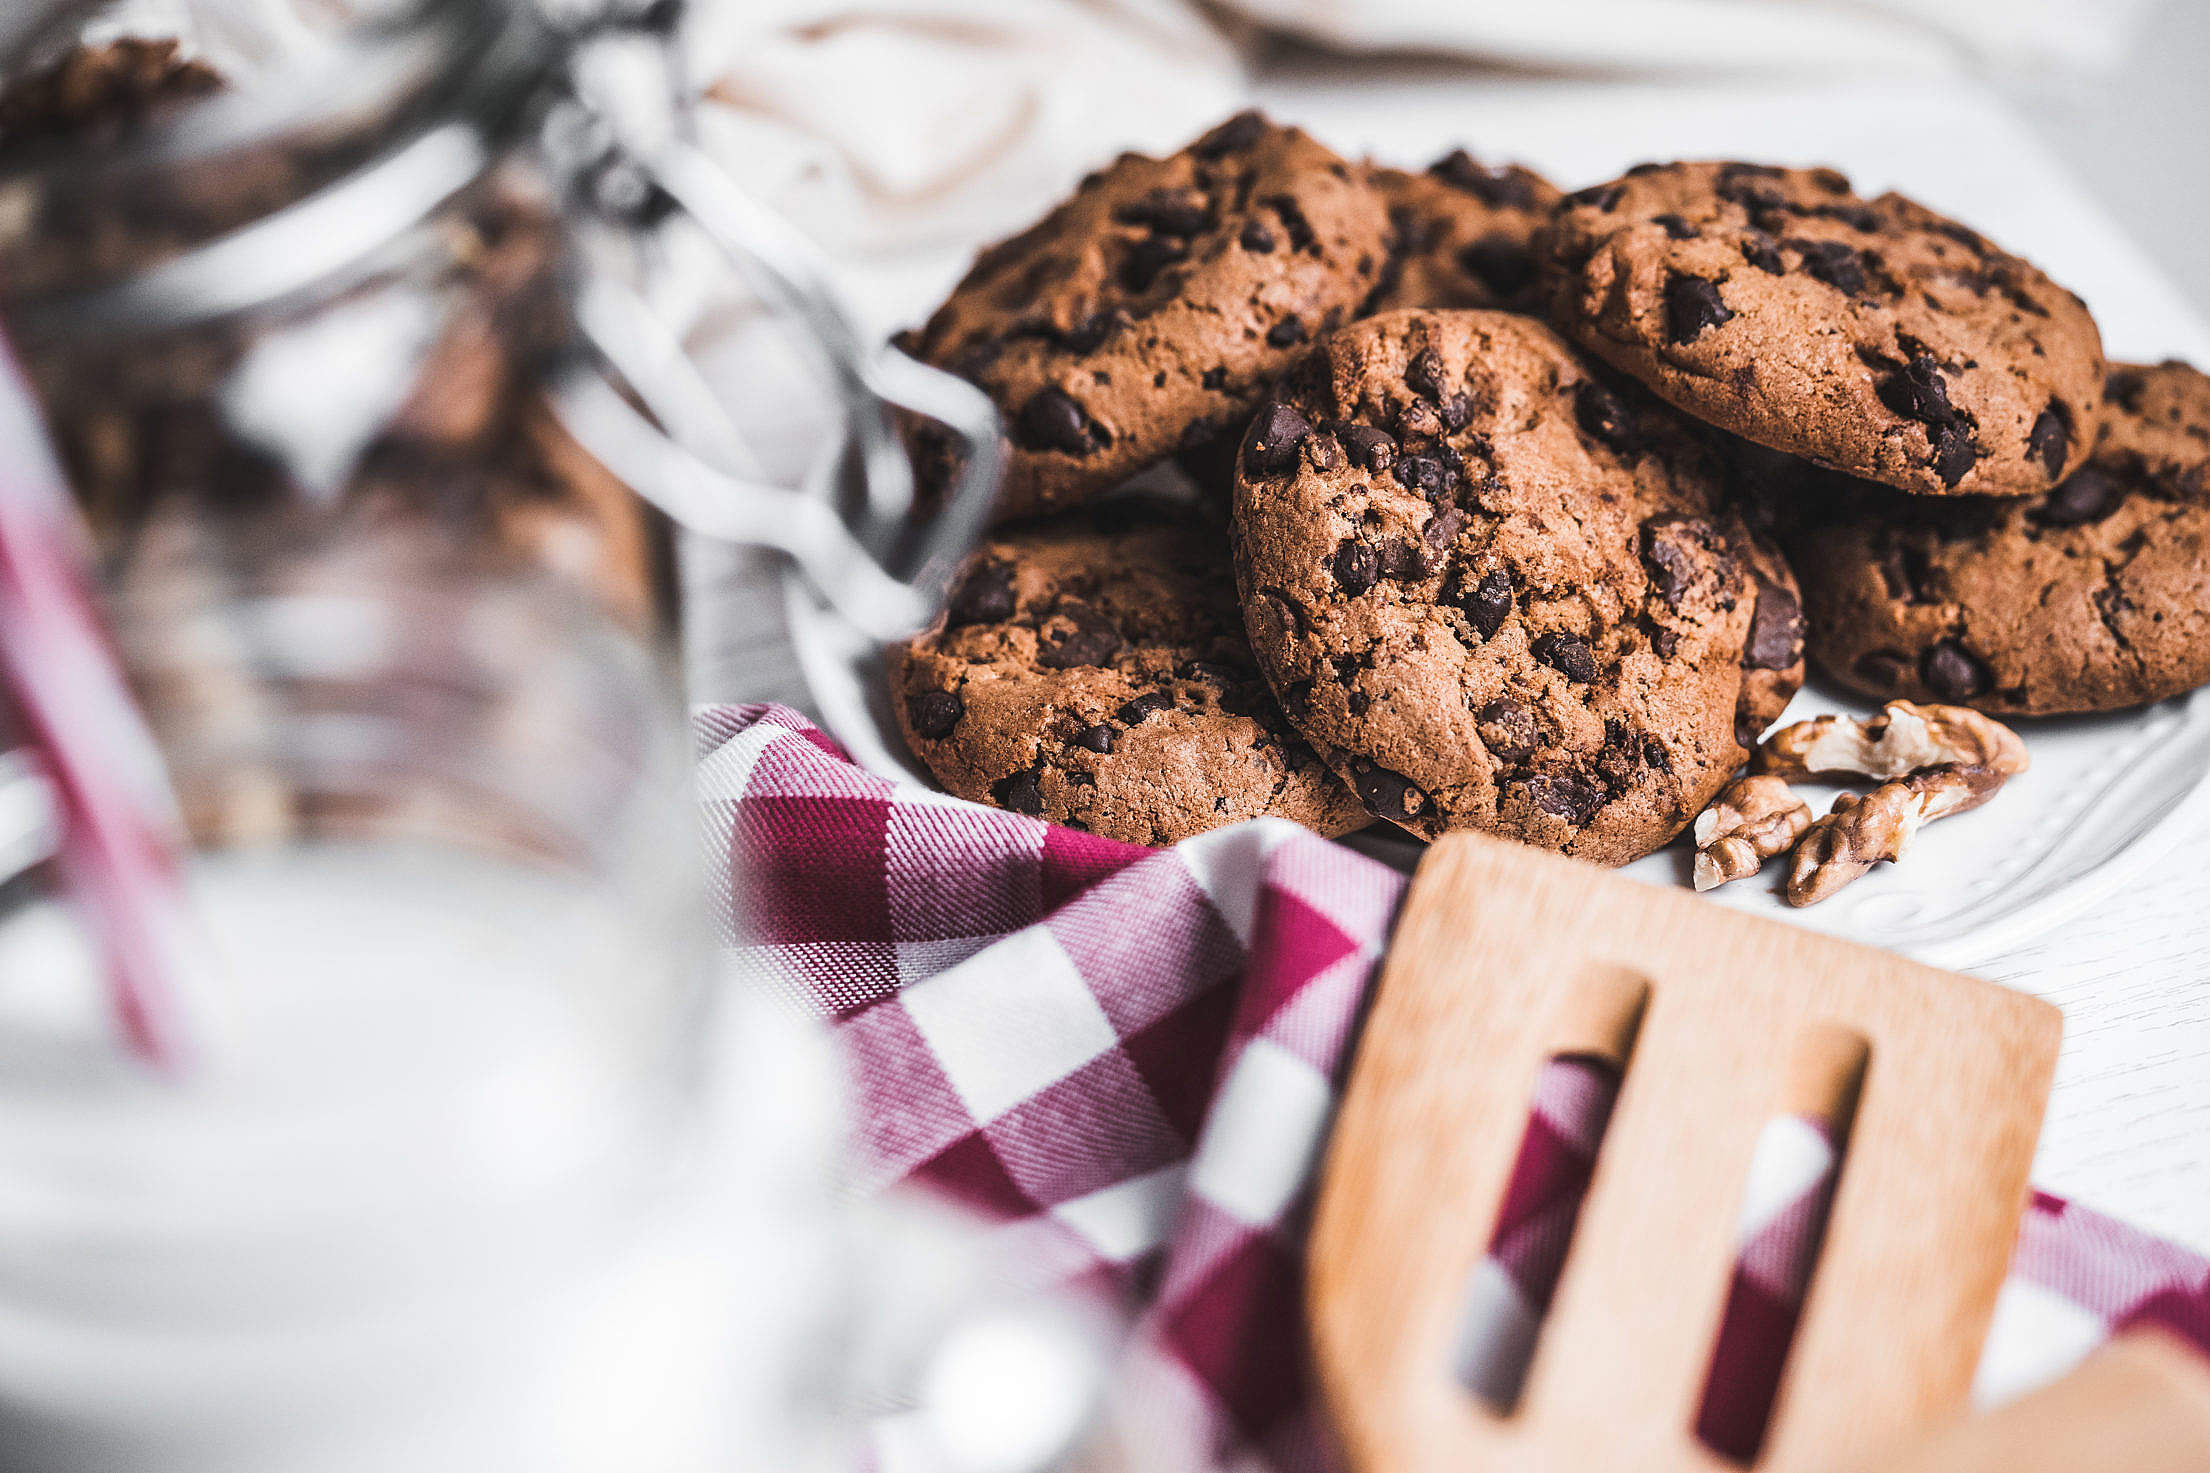 Download Freshly Baked Chocolate Cookies Free Stock Photo